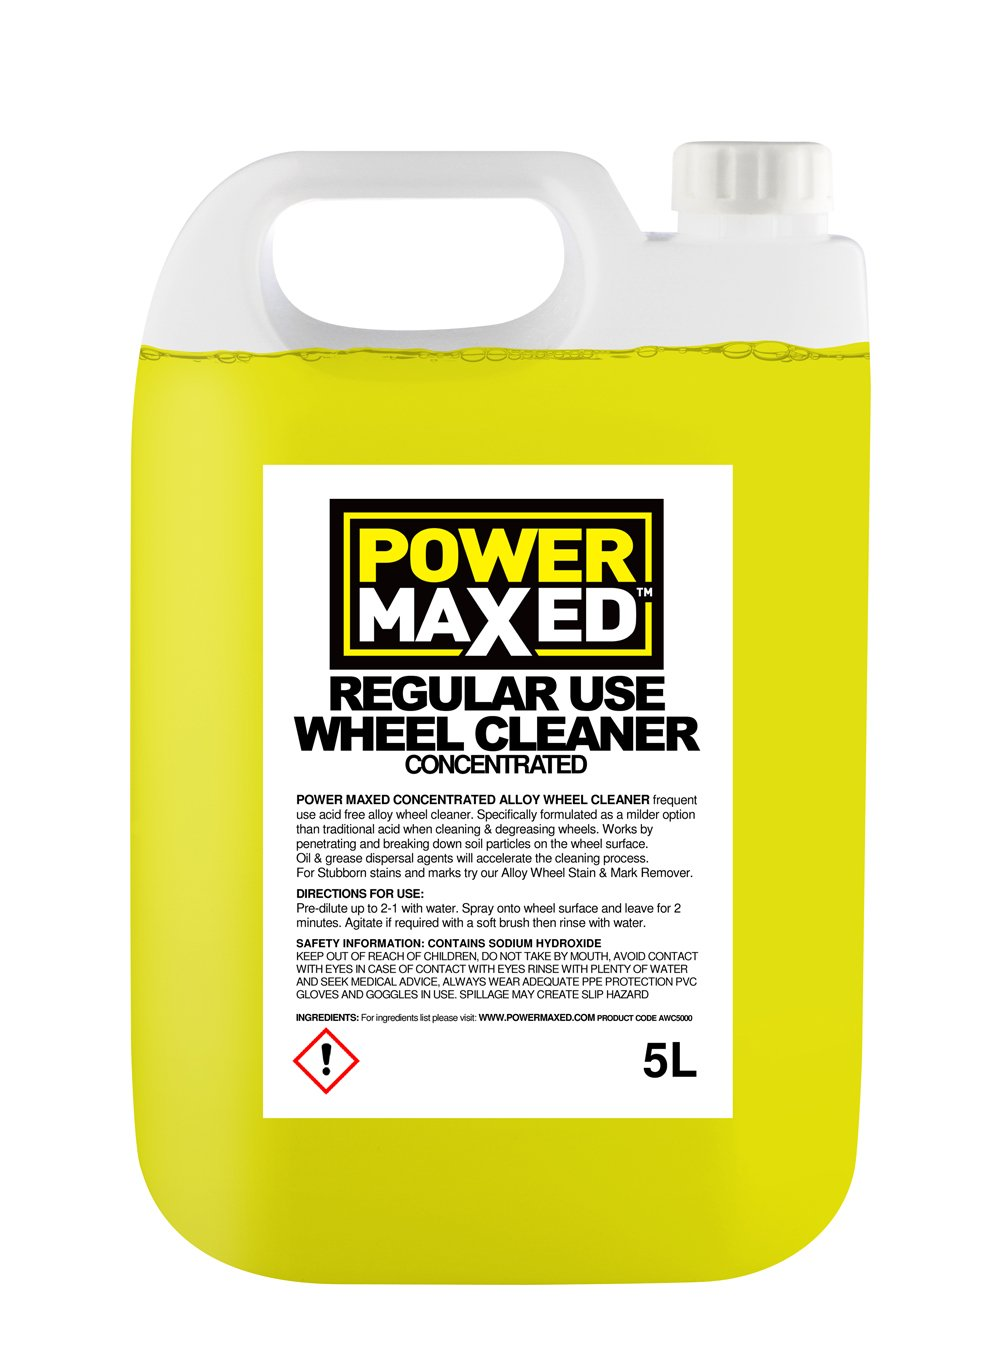 Power Maxed Awc5000 Alloy Wheel Concentrate Cleaner Pioneer